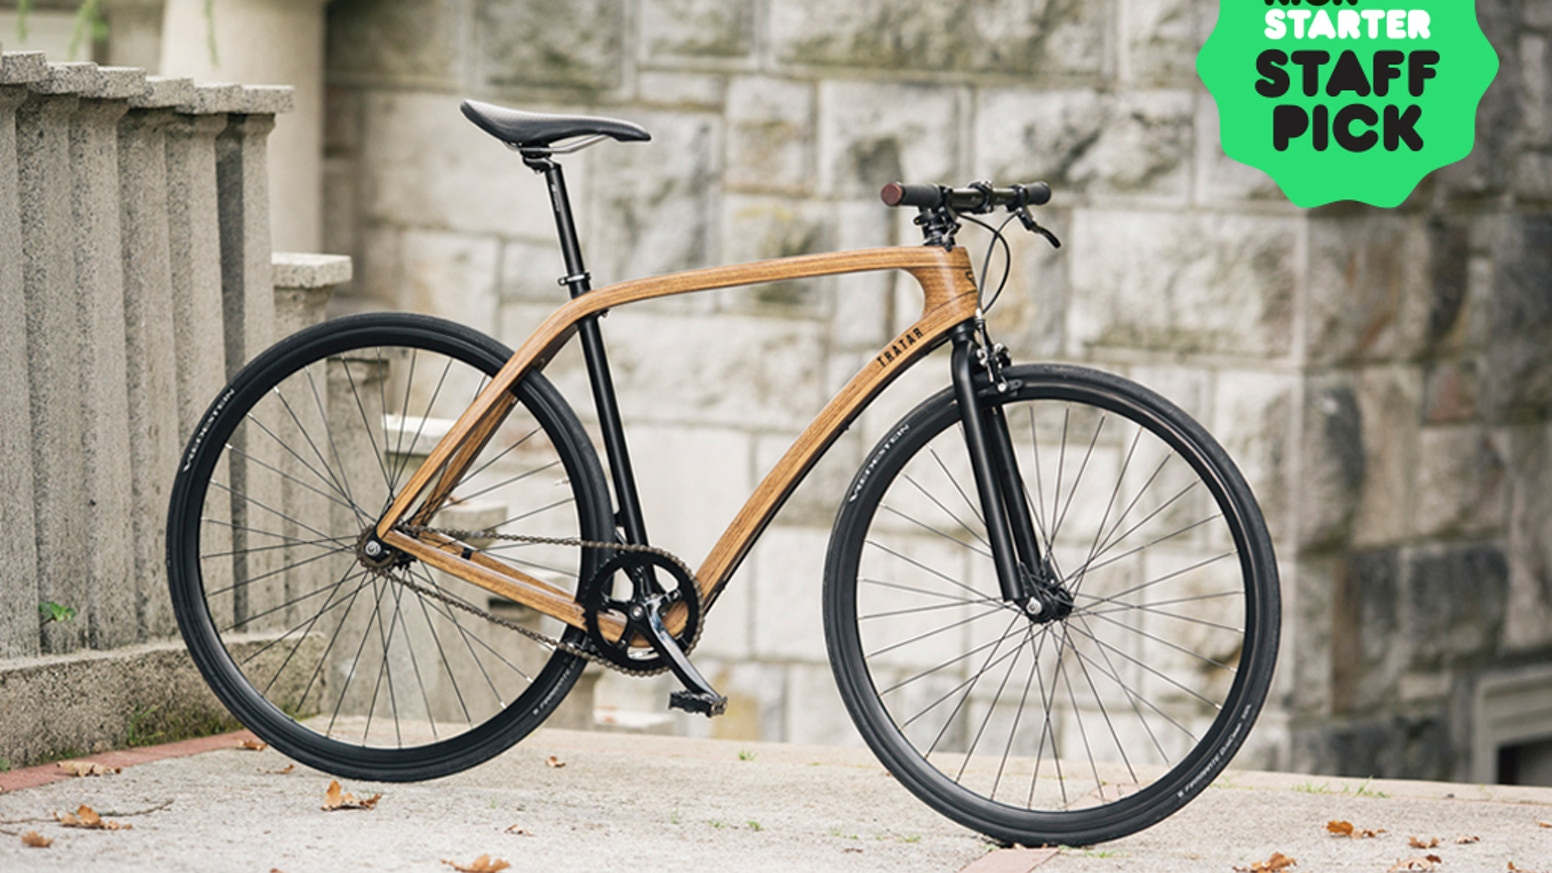 We're not just about making bikes, we're about creating a handmade commuting experience that adds pleasure and recognition to your ride